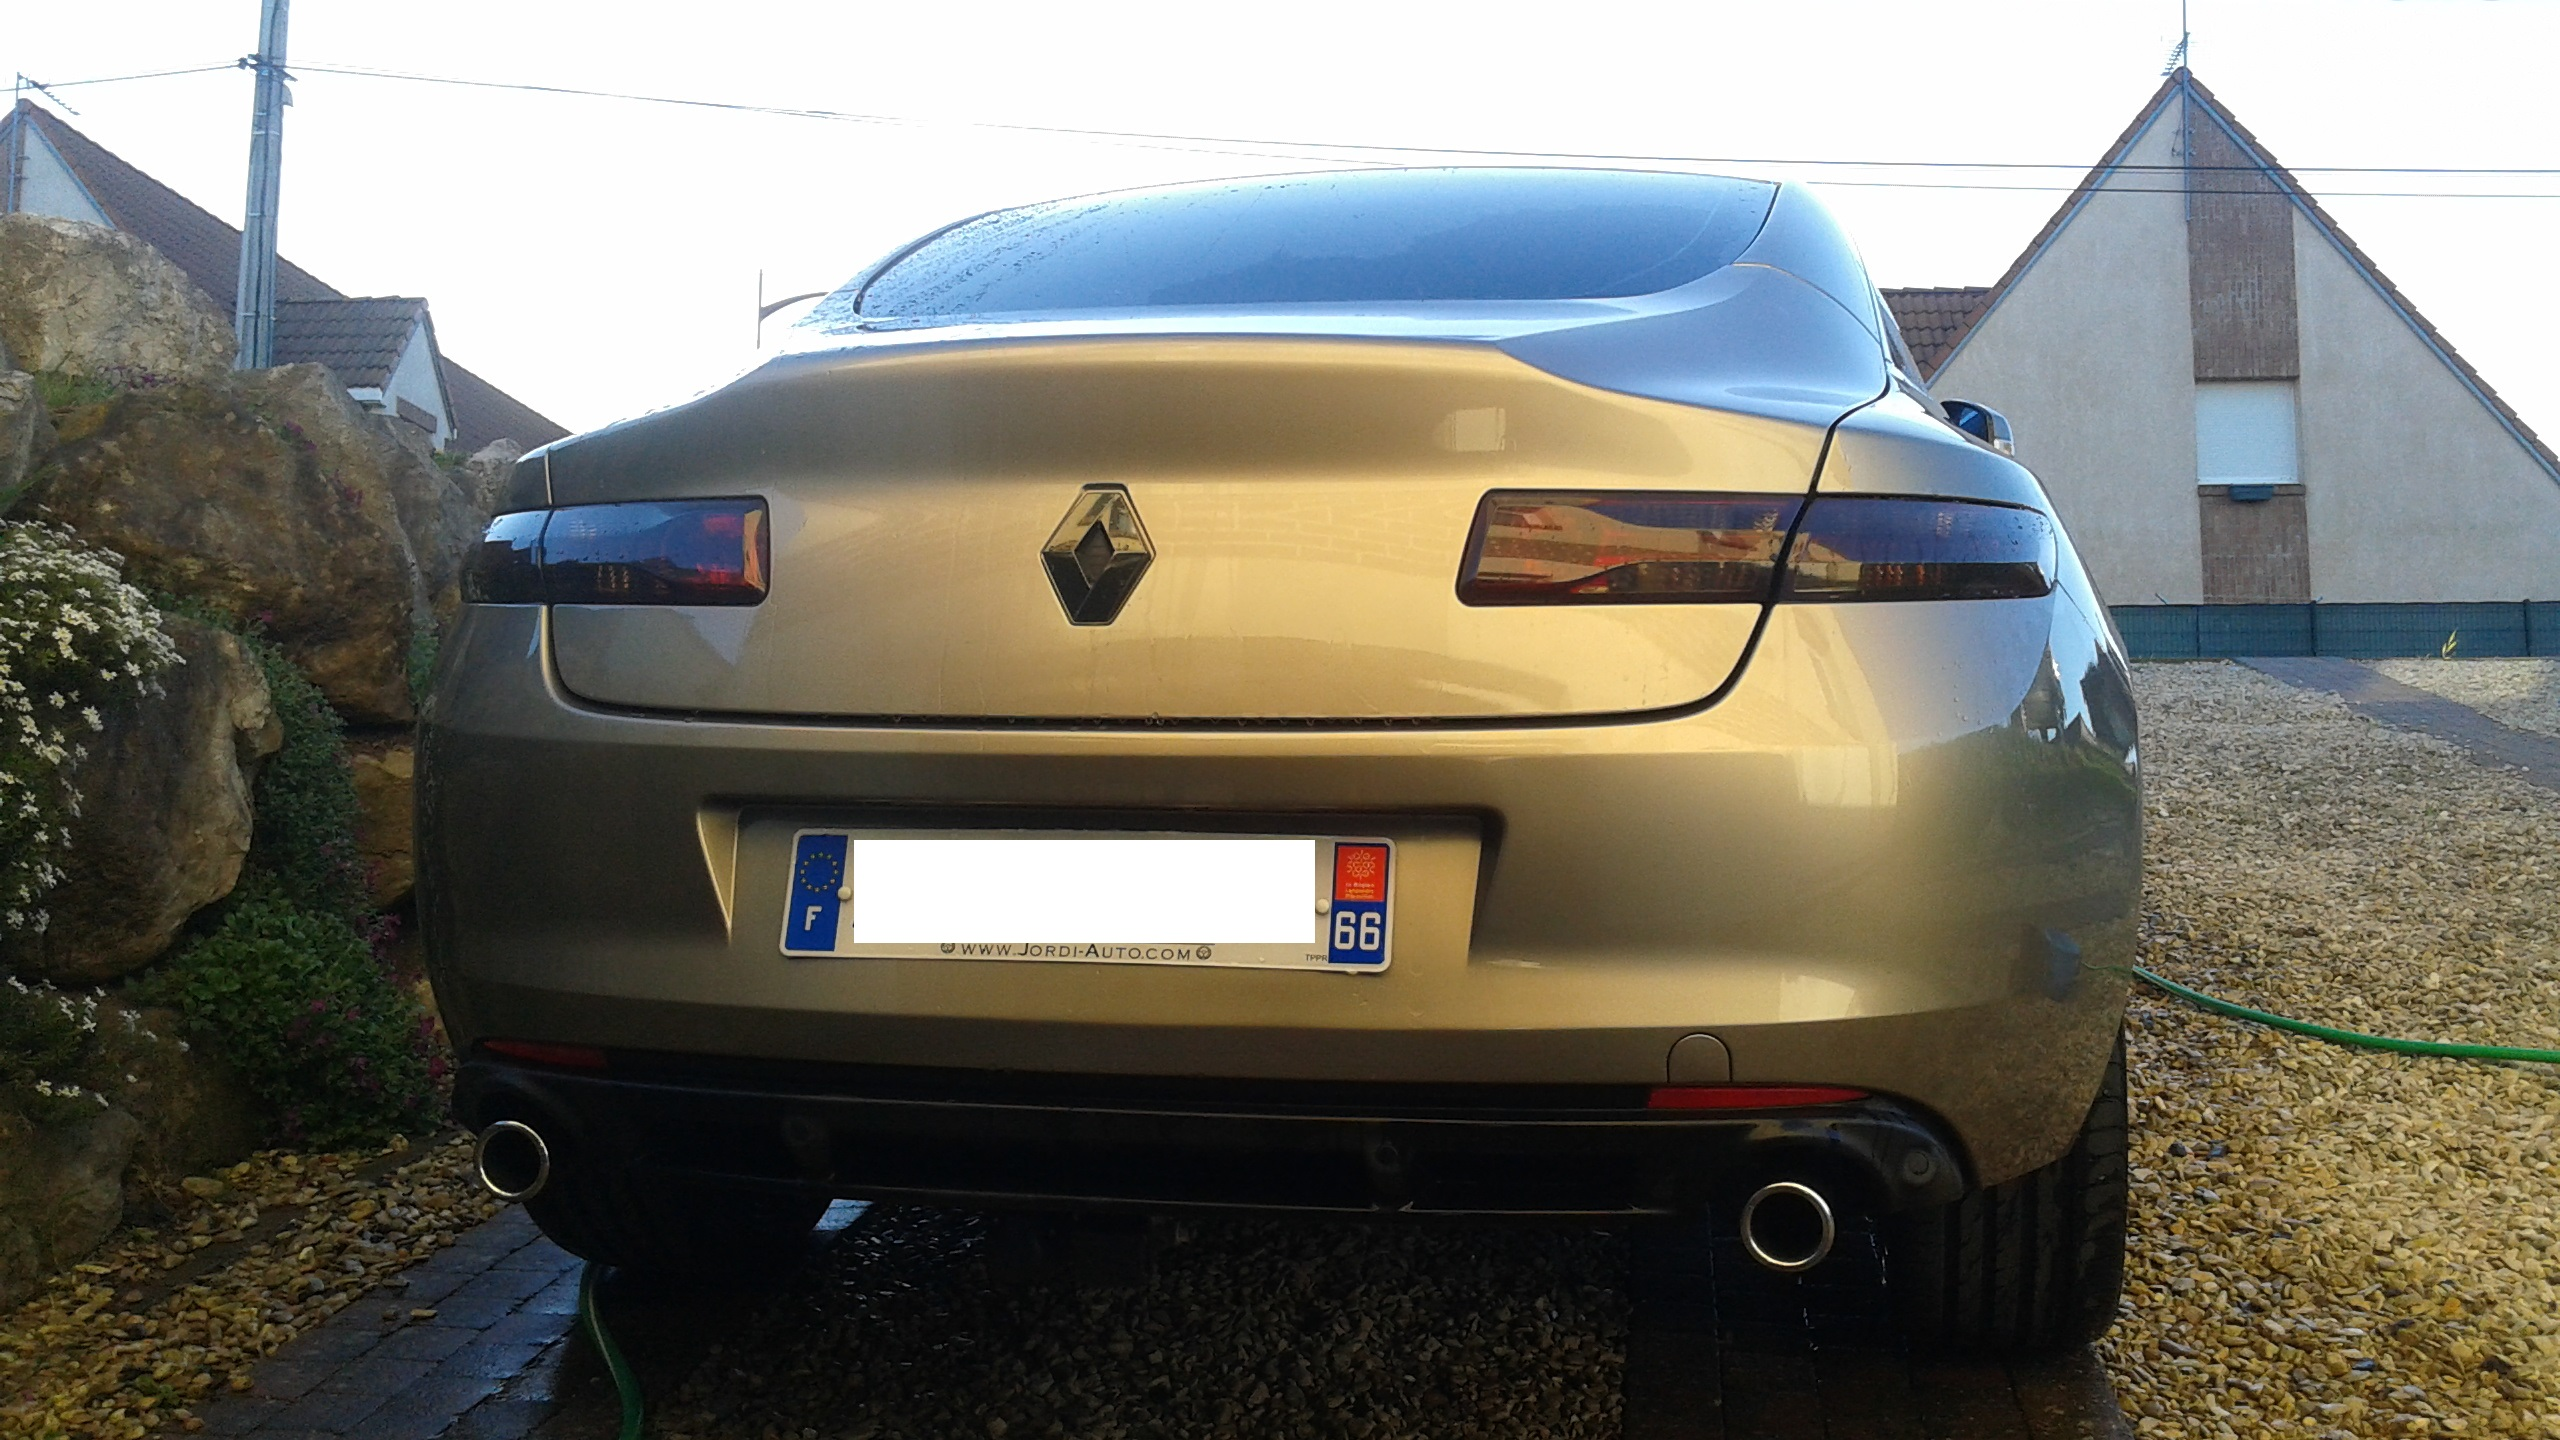 [nathanjo] Laguna III coupé initiale 3.0 dCi 235 - Page 5 20160417194957